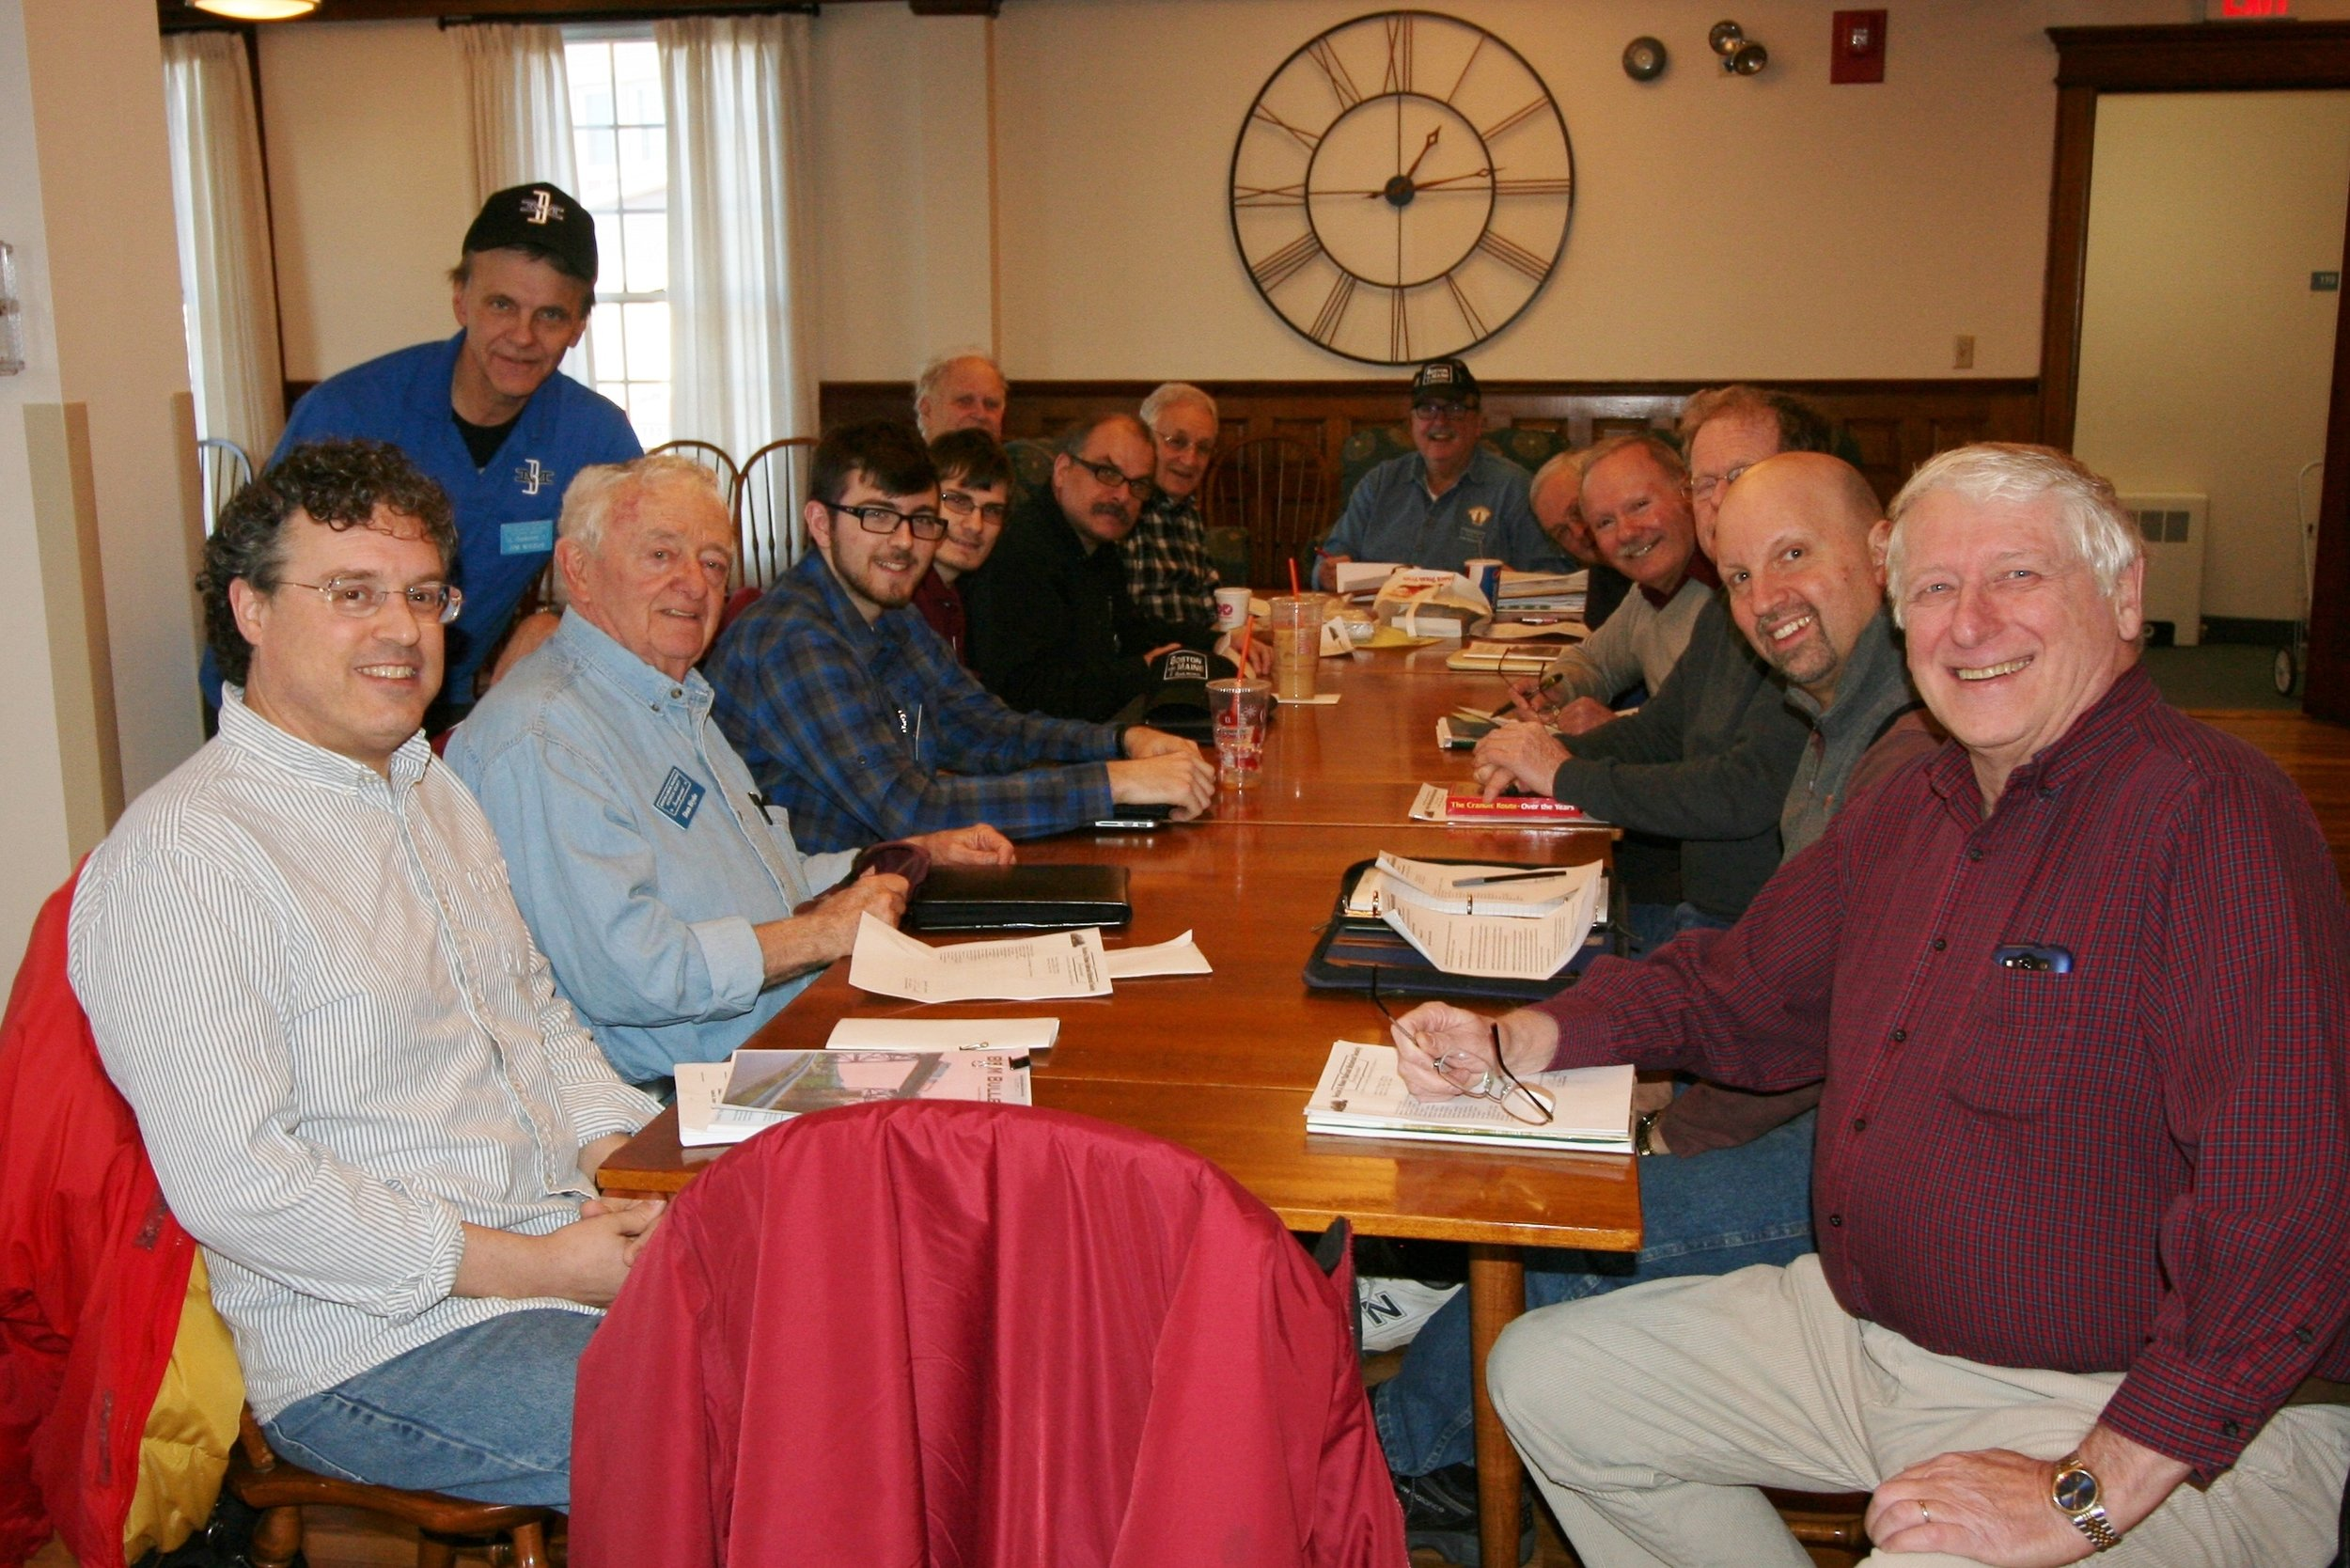 B&MRRHS officers, board members, and staff met at Rogers Hall, Lowell, Mass., January 14, 2017